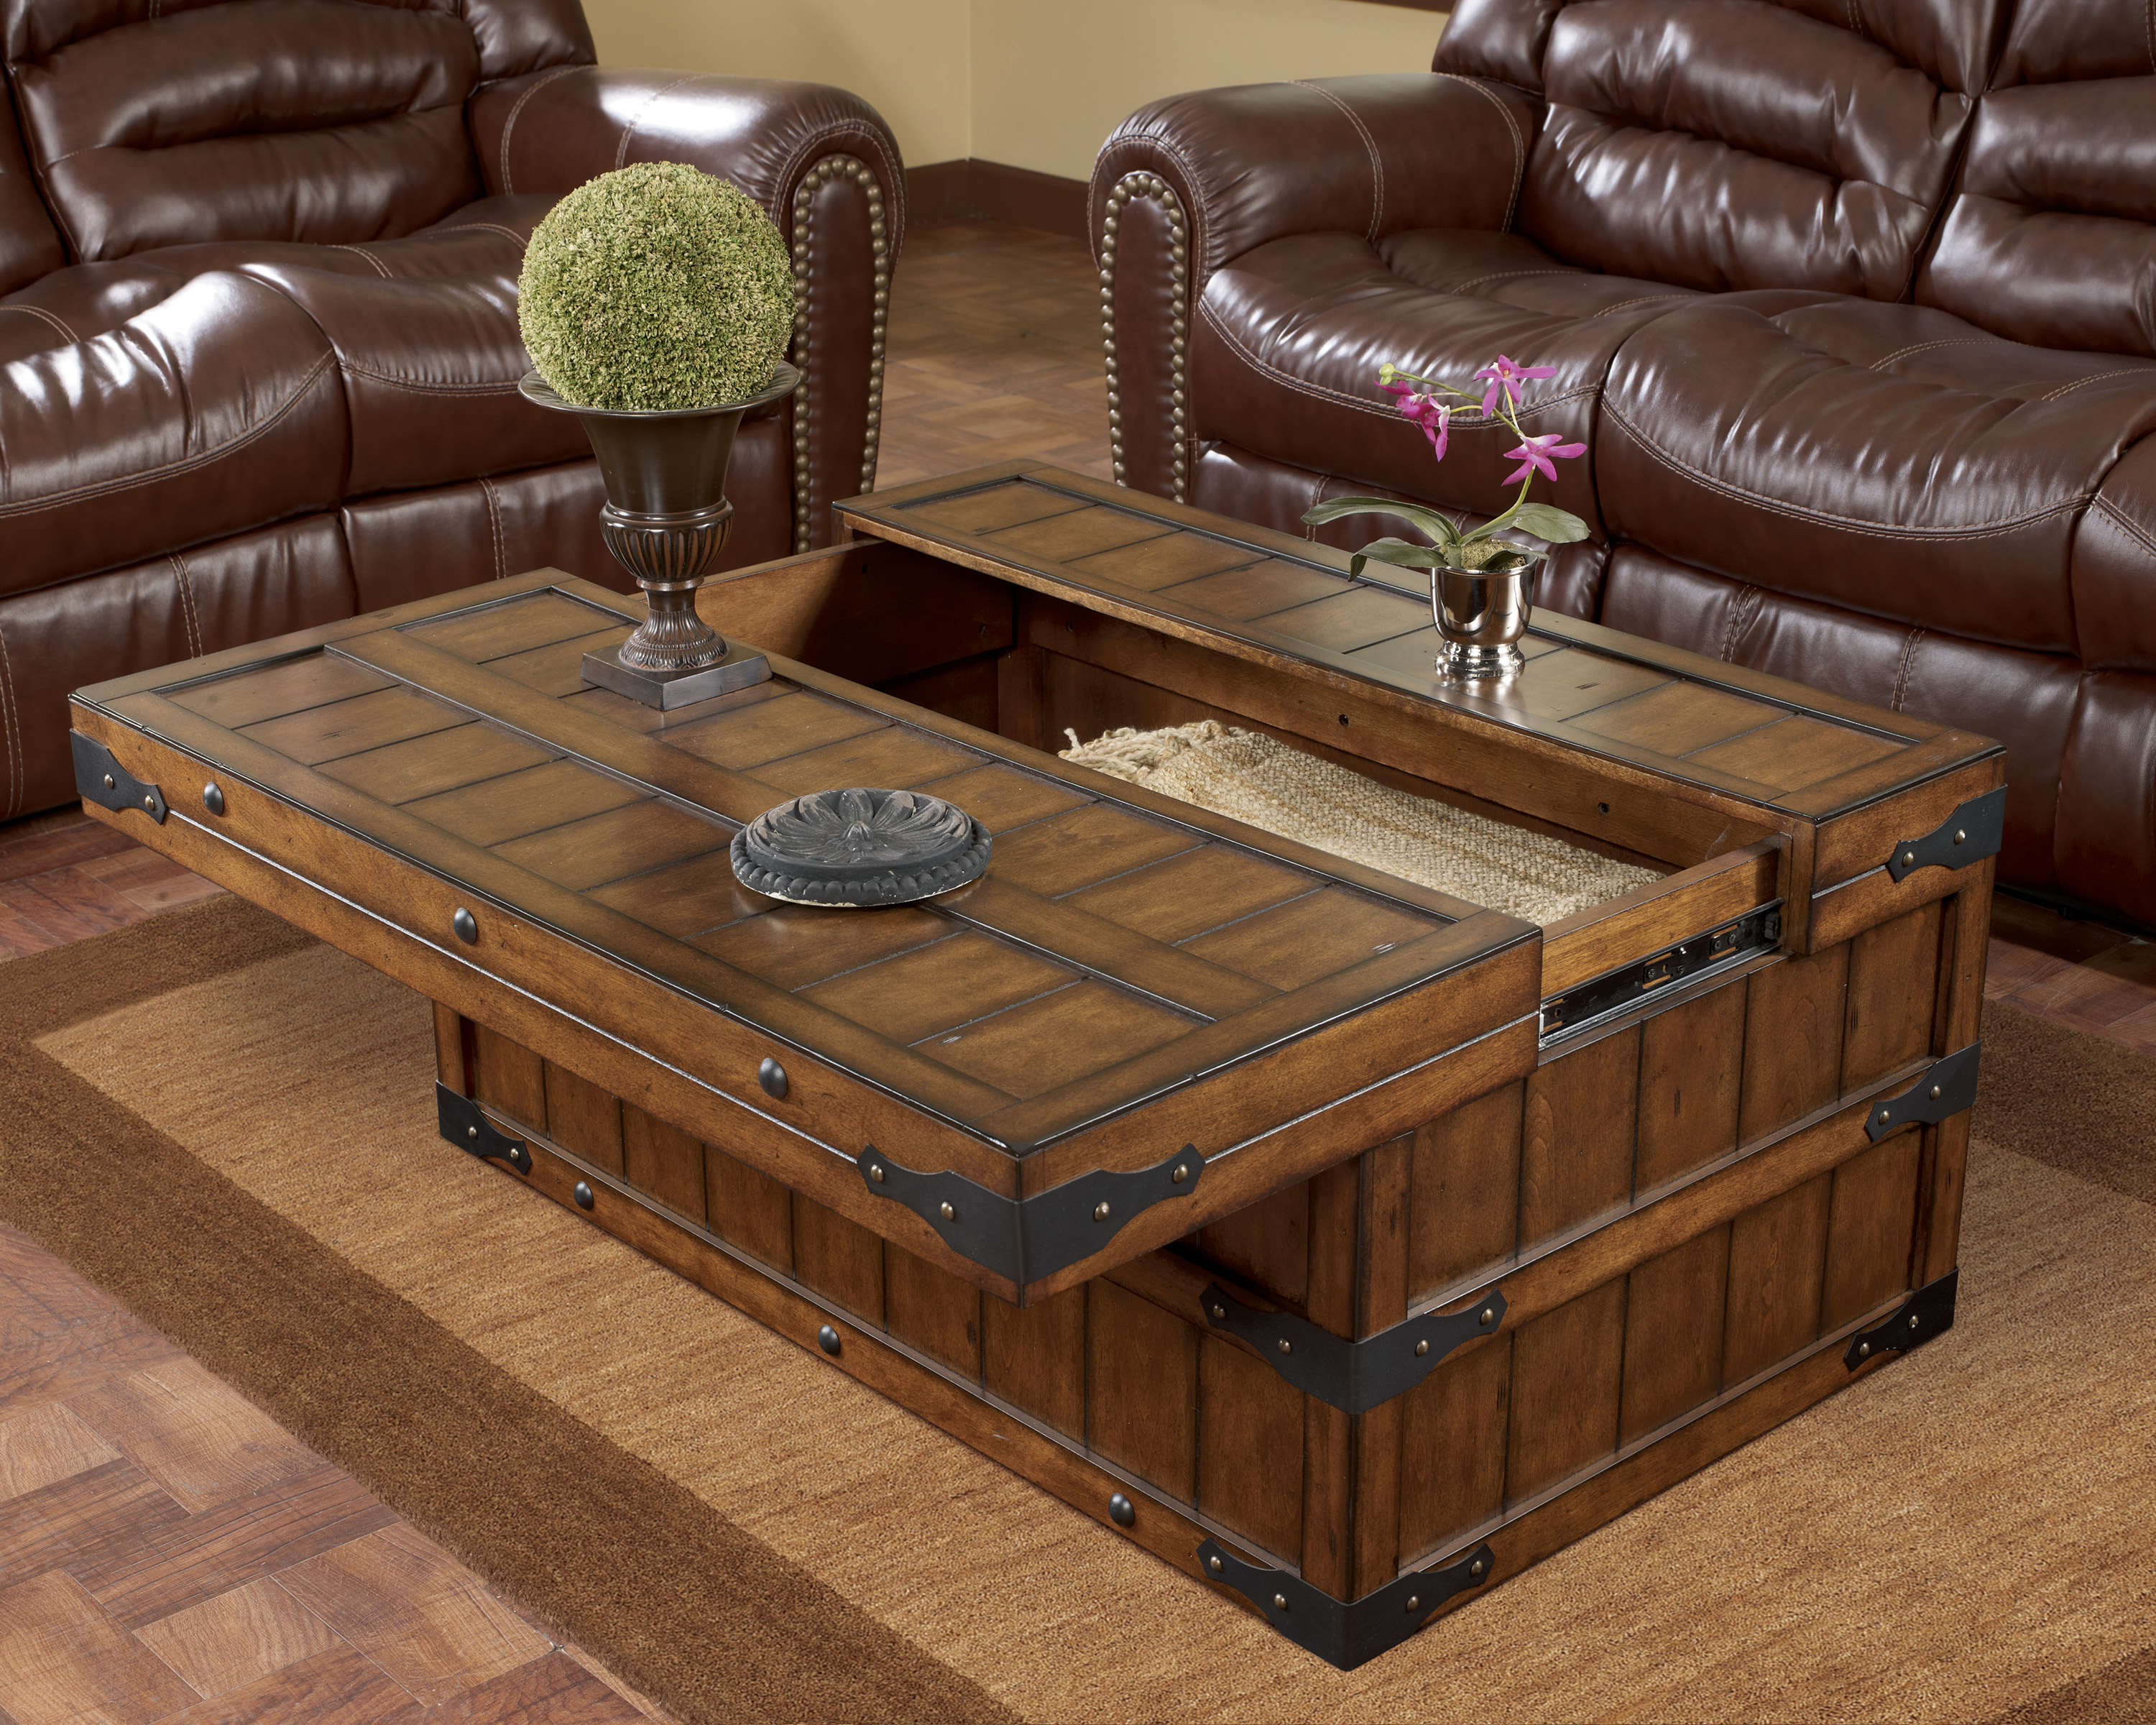 Rustic Coffee And End Tables Rustic End Tables And Coffee Tables Rustic Coffee And End Tables (View 3 of 8)